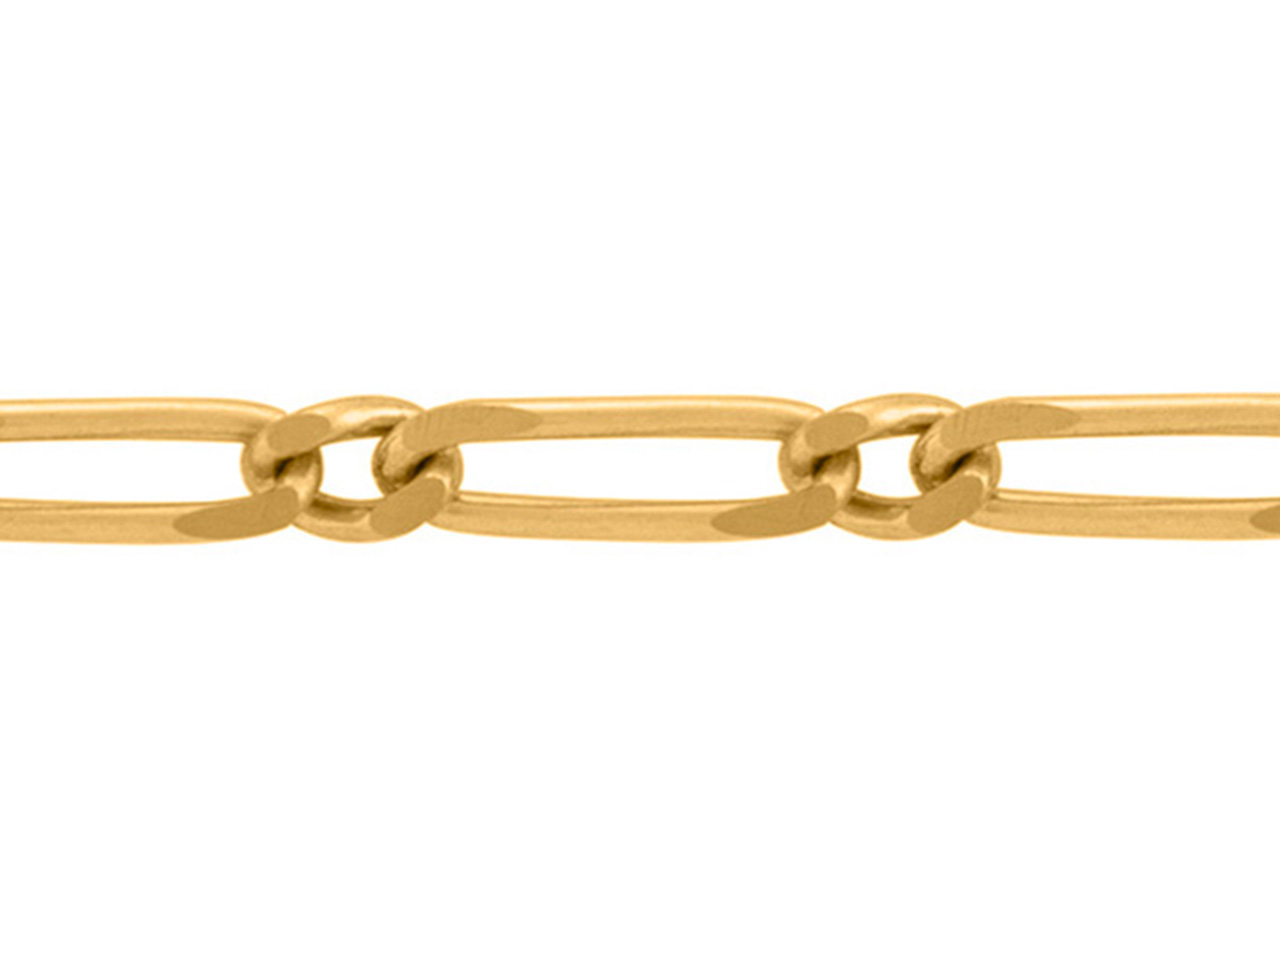 Chaine Figaro alternée 1/1, 5 mm, Or jaune 18k. Réf. 00899